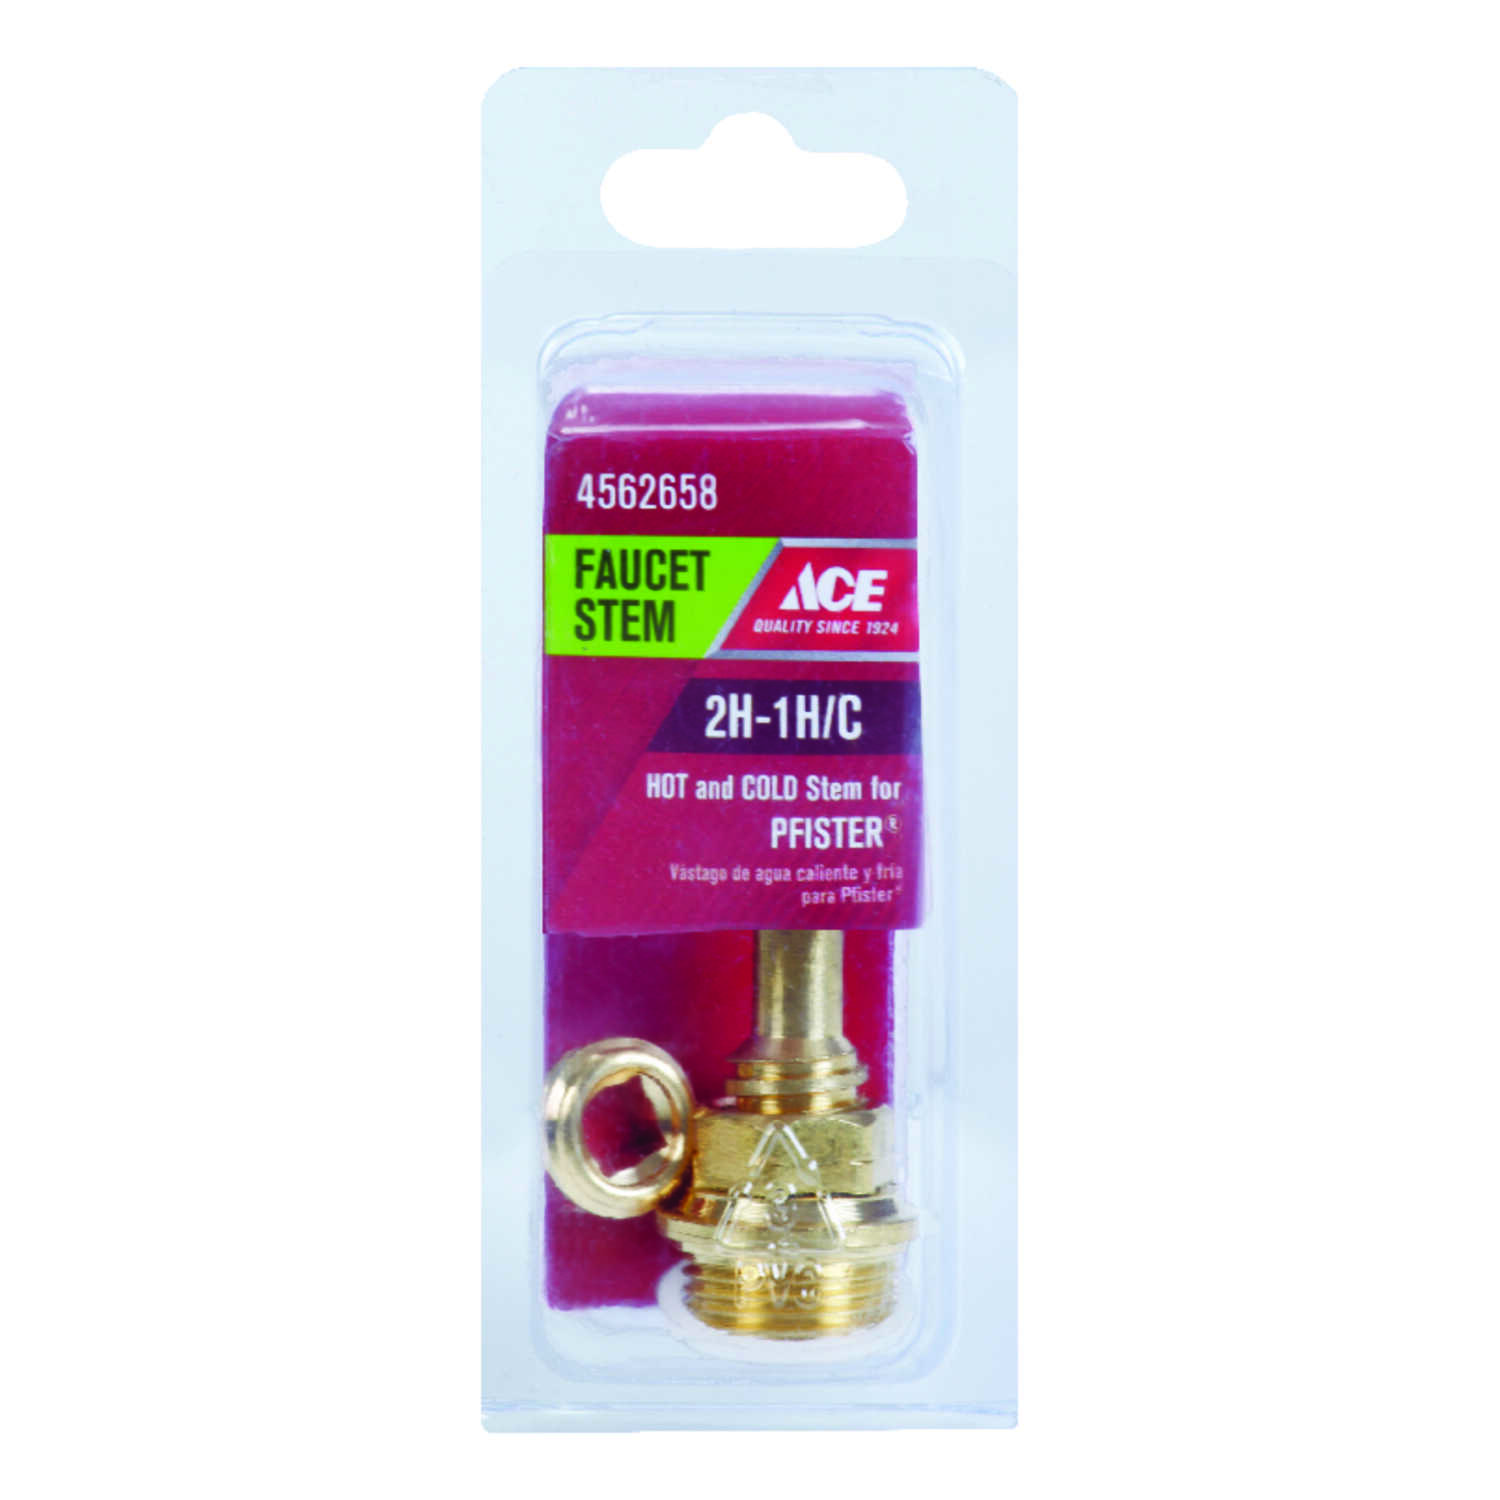 Ace  Hot and Cold  2H-1H/C  Faucet Stem  For Price Pfister